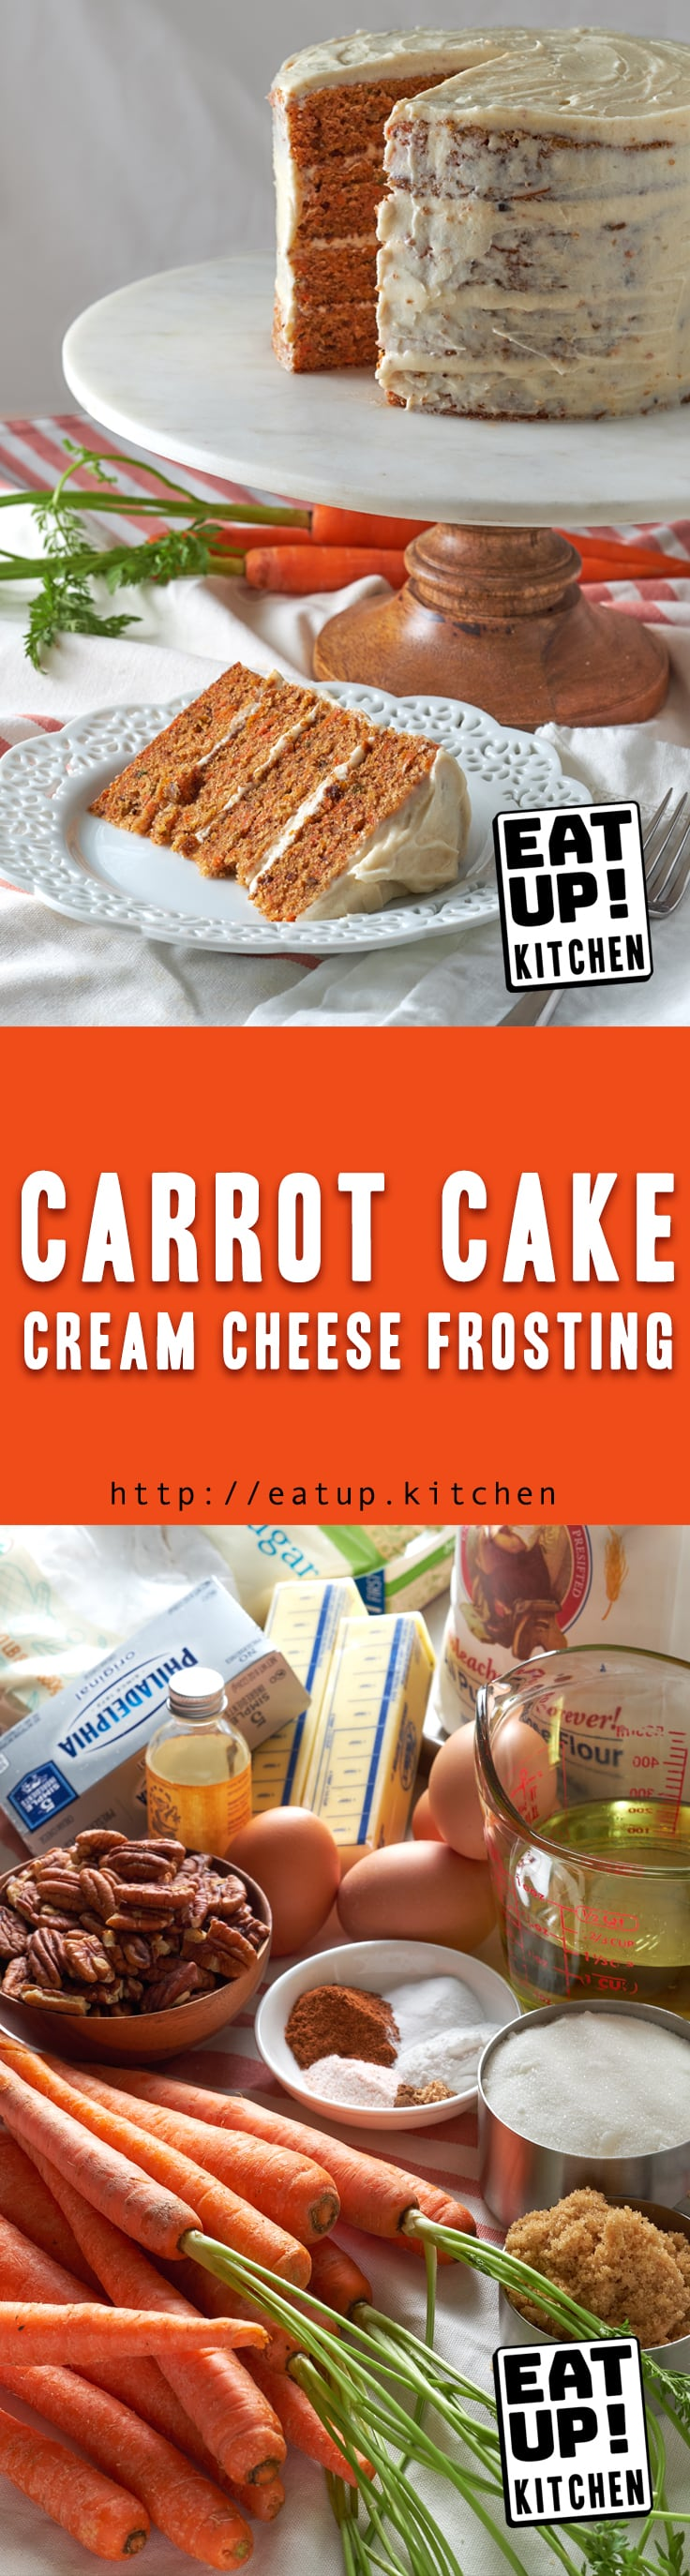 What Easter Dinner is complete without some Carrot Cake for dessert?? This updated fruitless recipe with Cream Cheese Frosting is just sweet enough and perfectly moist. We'll make quick use of a stand mixer and a sheet pan to make this four layer, six inch cake in just about an hour and a half.